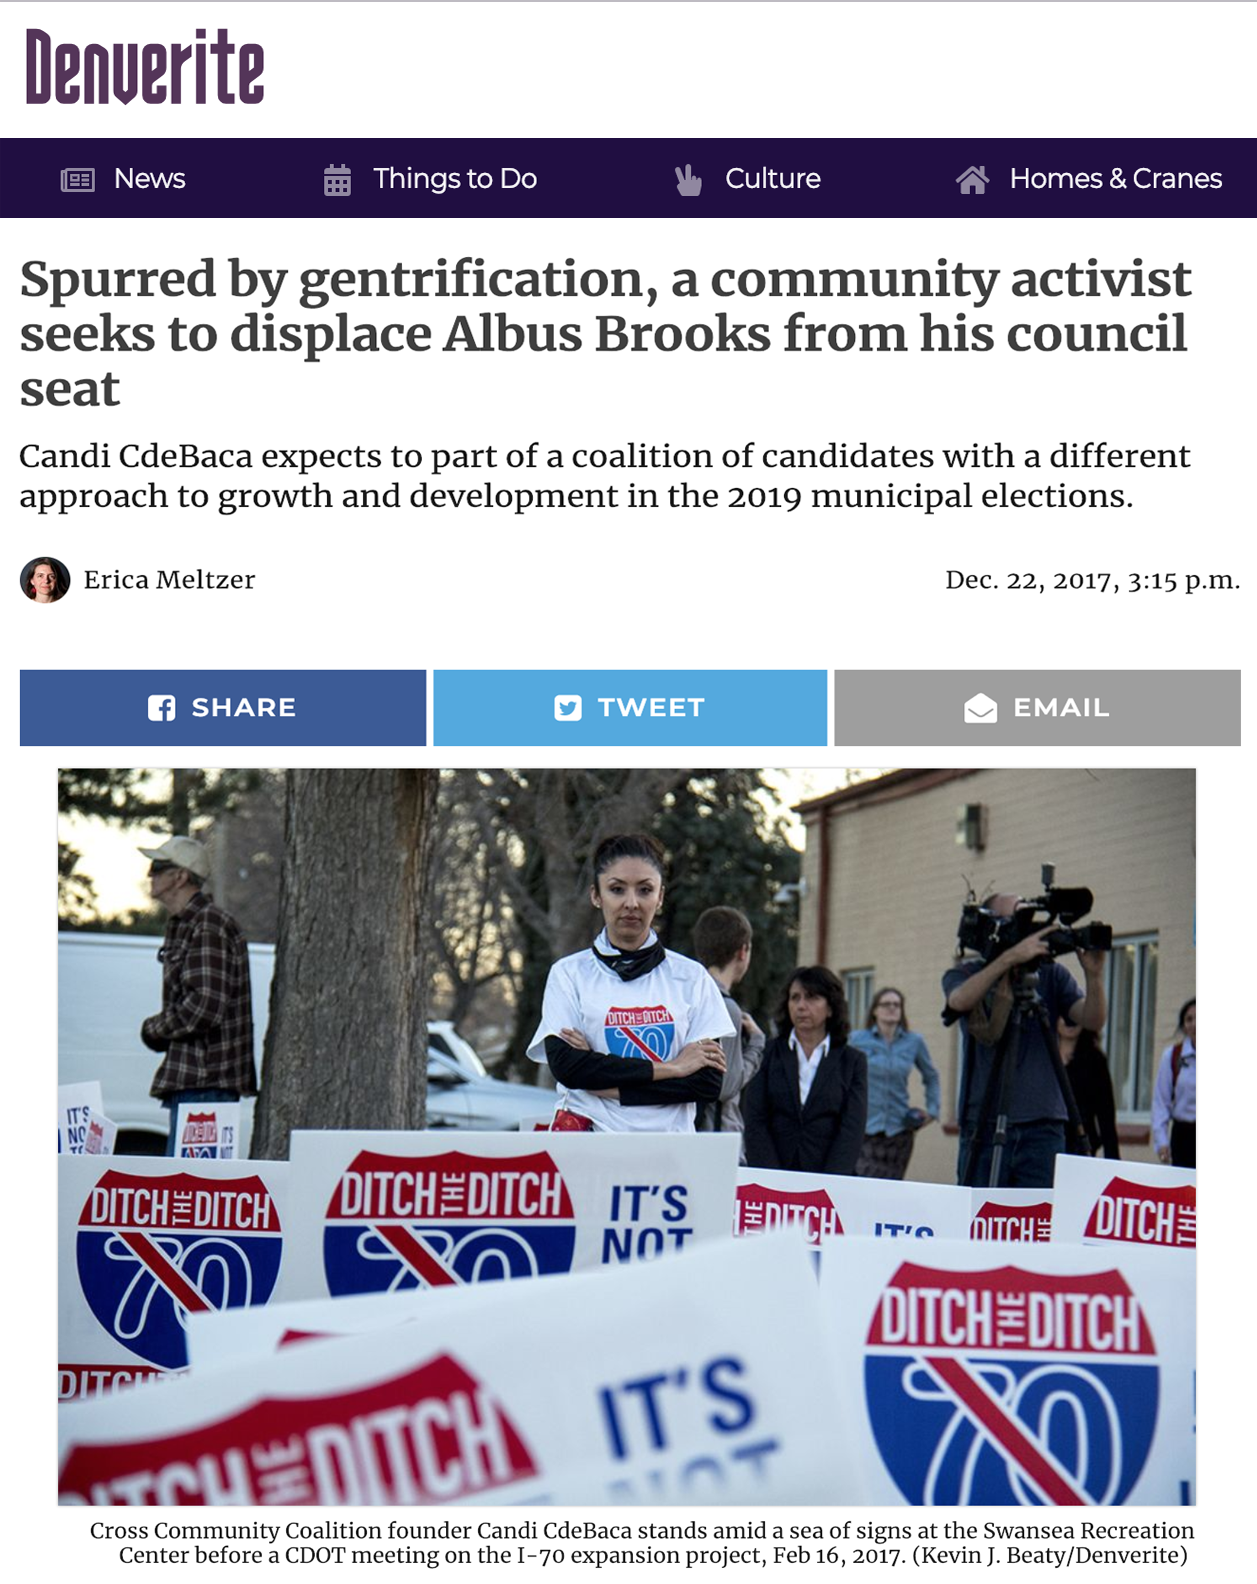 Spurred by gentrification, a community activist seeks to displace Albus Brooks from his council seat - Candi CdeBaca expects to be a part of a coalition of candidates with a different approach to growth and development in the 2019 municipal elections.